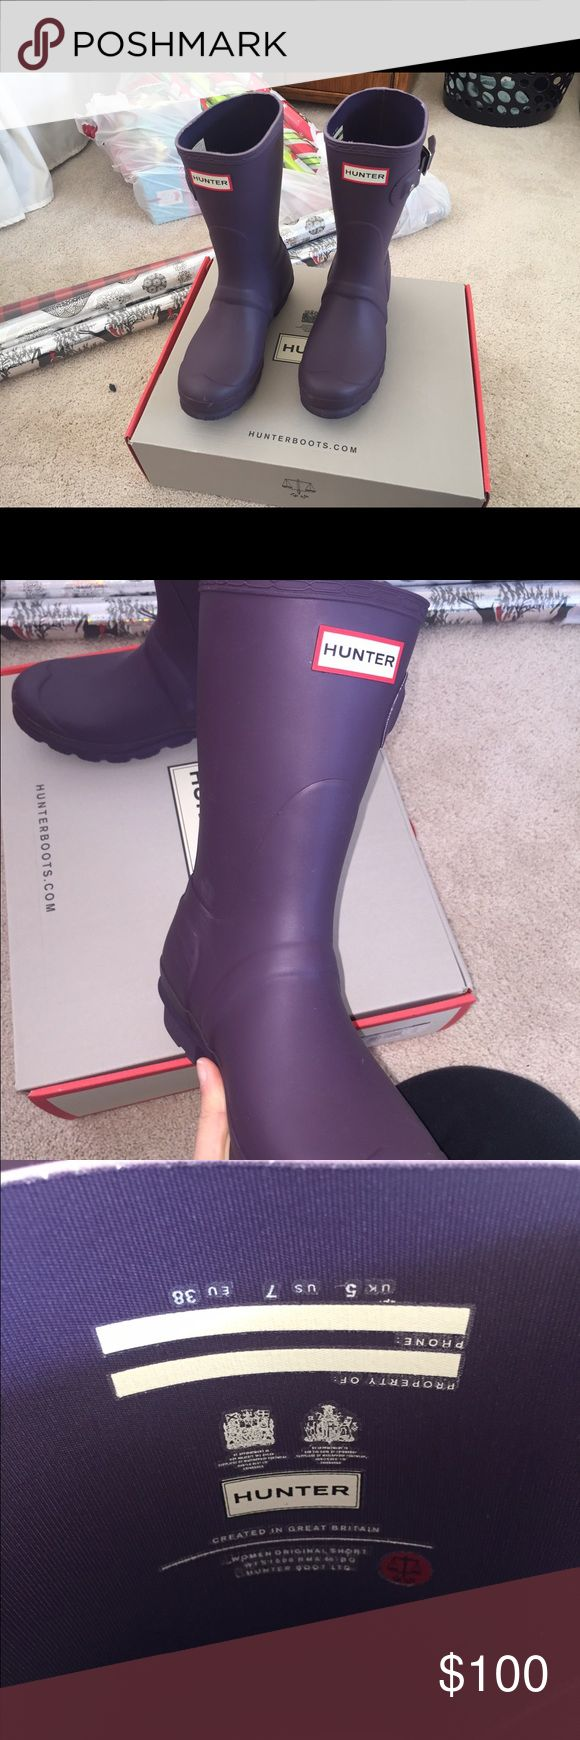 Women's short matte hunter boots Size women's 7. Bought before Christmas but I can't seem to find the right size for my foot. I wore them one time at college and realized that they were too small. Comes in original box!  In brand new condition Hunter Boots Shoes Winter & Rain Boots